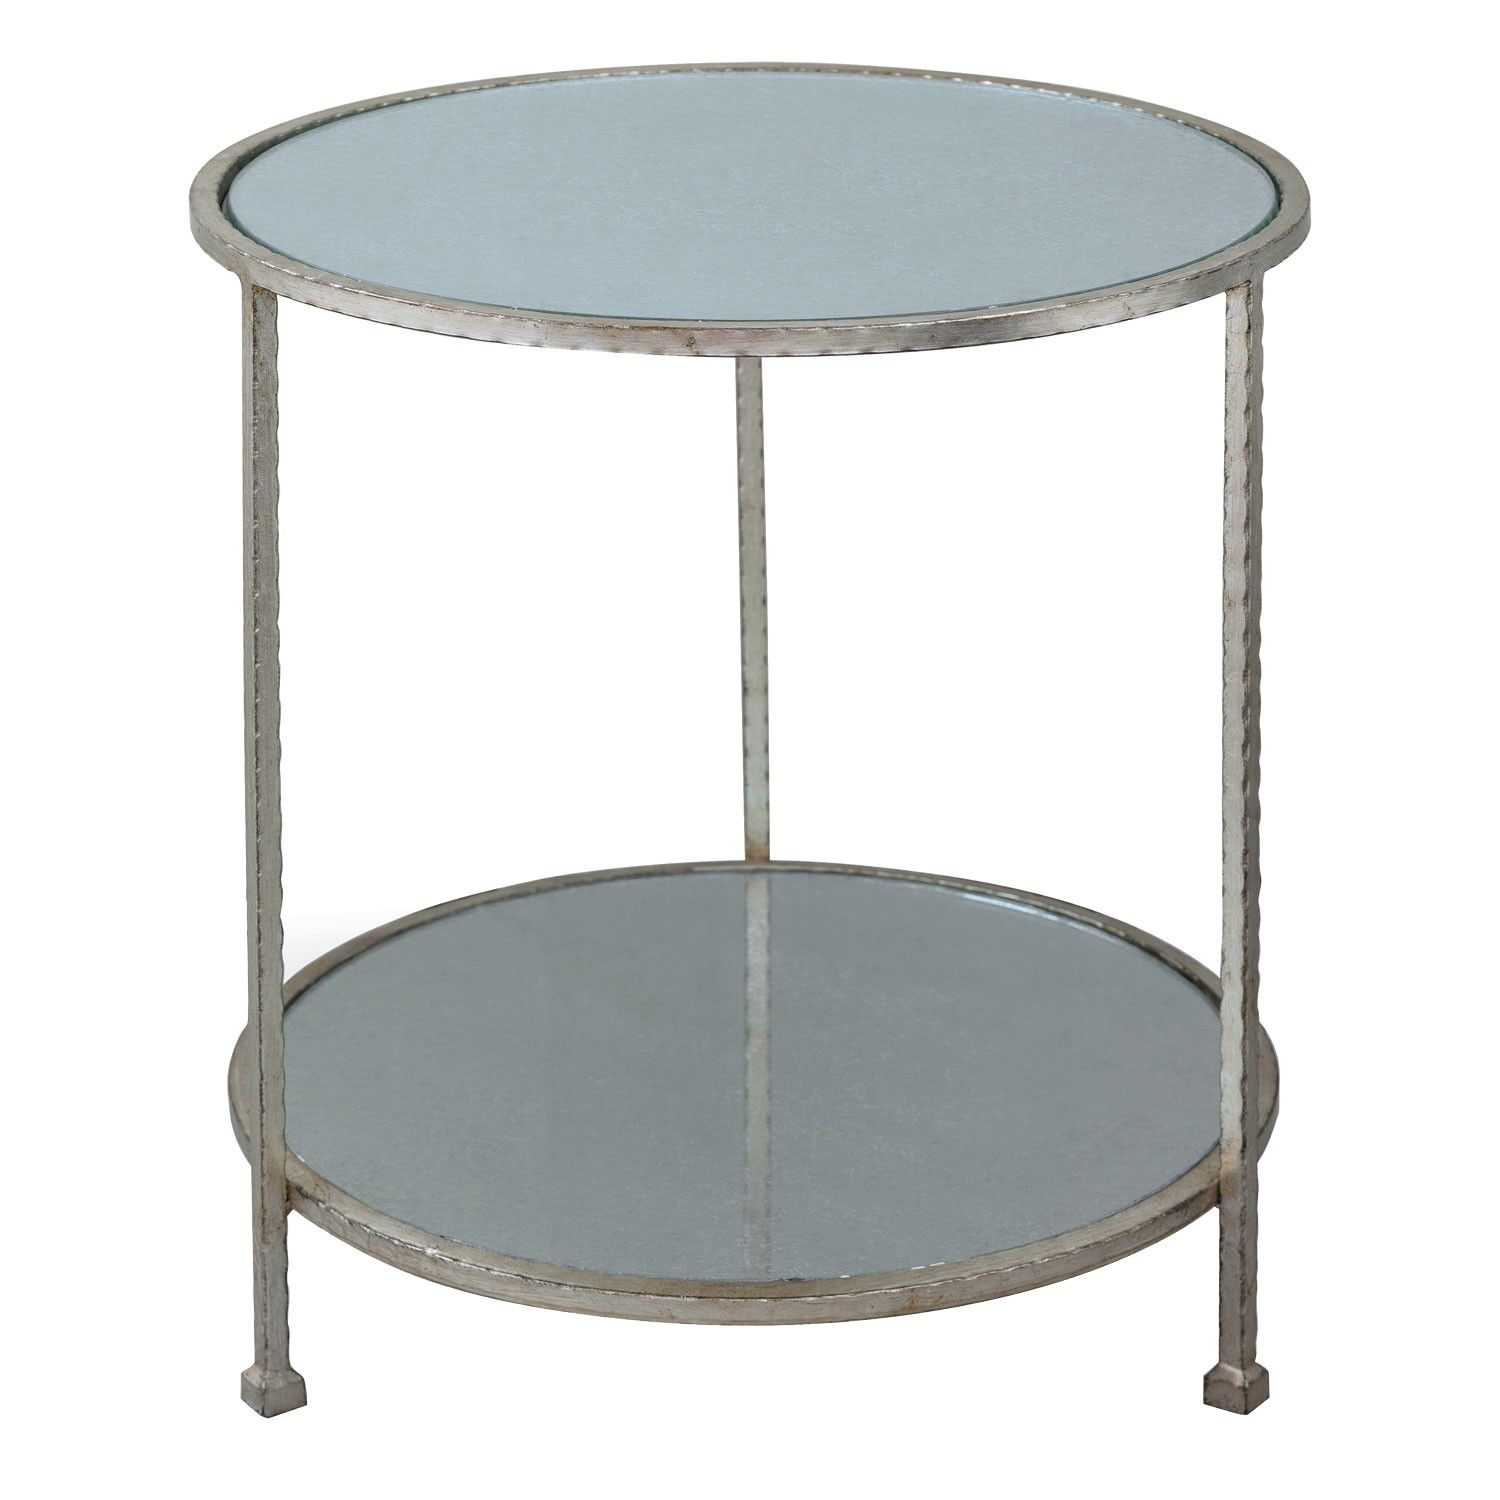 delectable outdoor end tables metals set concrete kmart dining bar and table gumtree round settings timber plastic wooden cover bunnings chairs for mimosa kwila umbrella rent